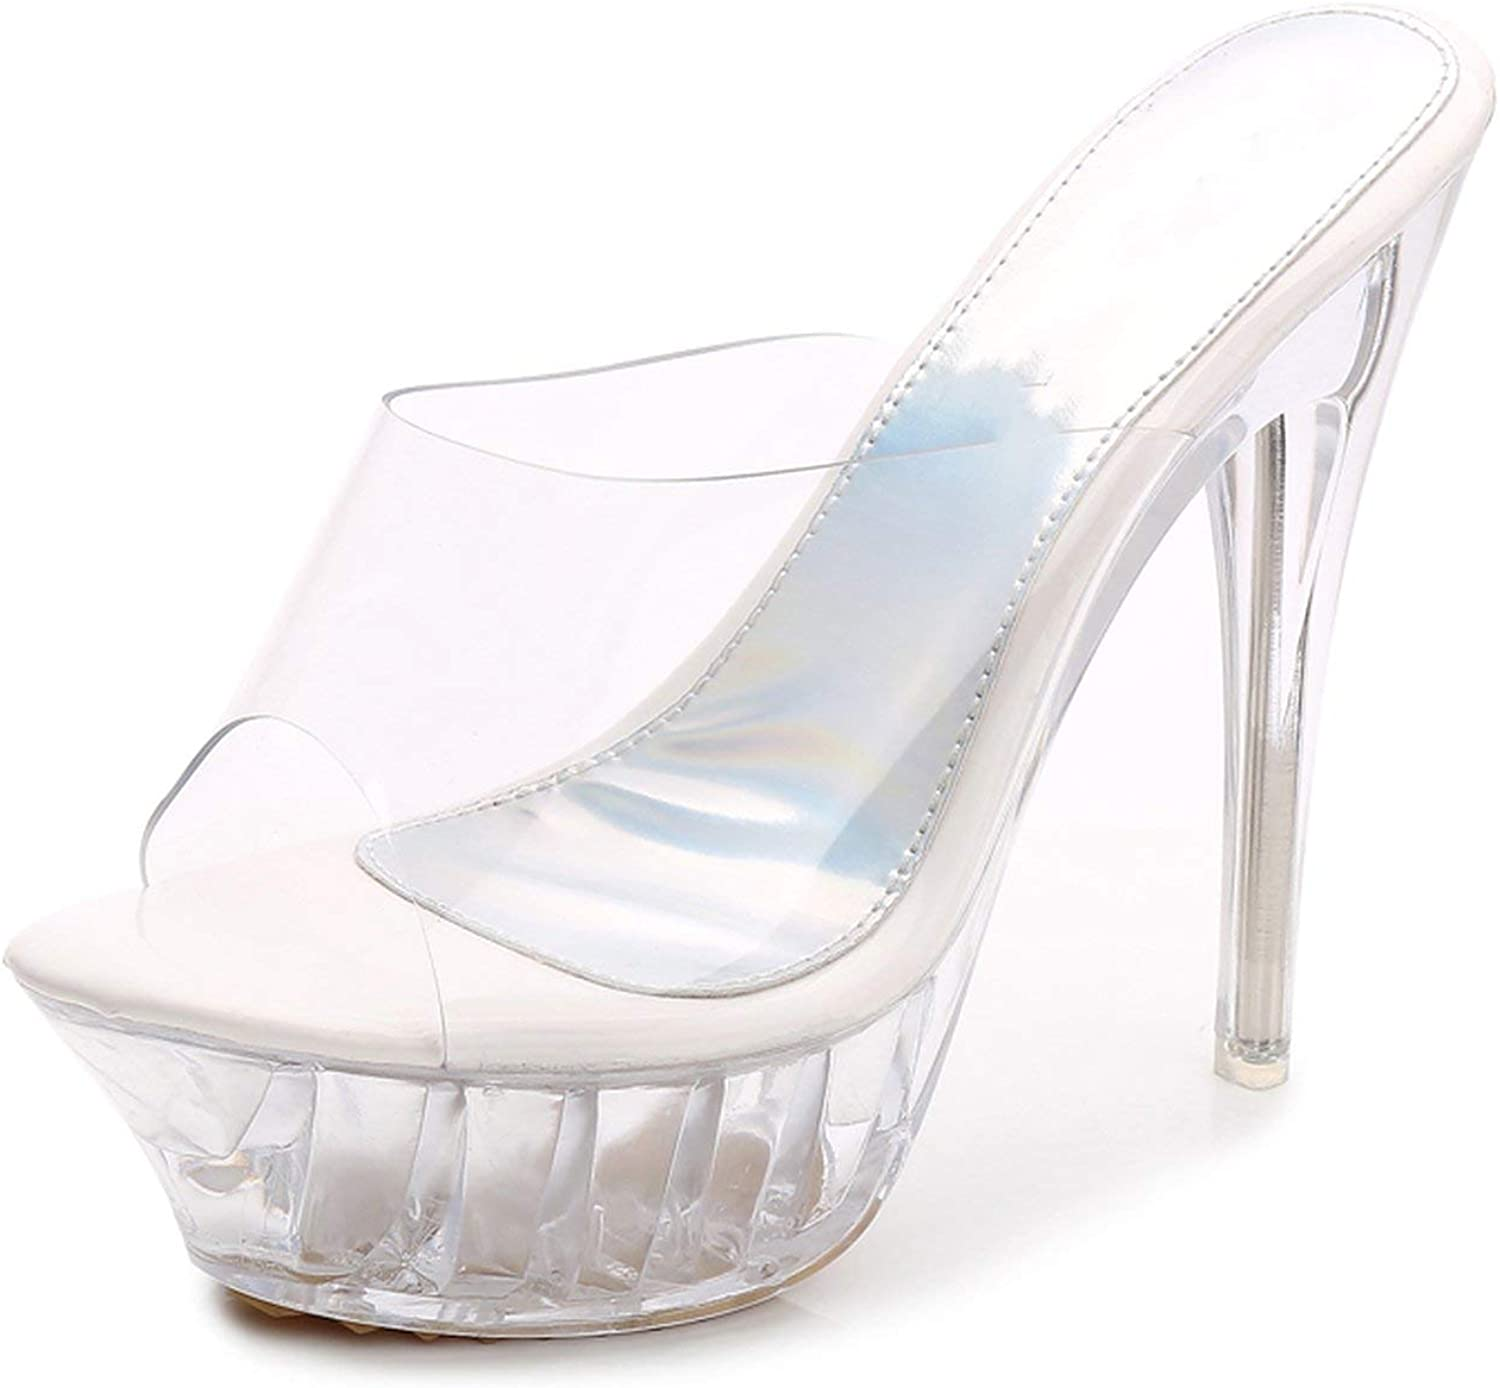 High Heels Womens Sandals Transparent Crystal Heel Model T Stage Sexy Lady Heeled shoes 35-43,1456white,11